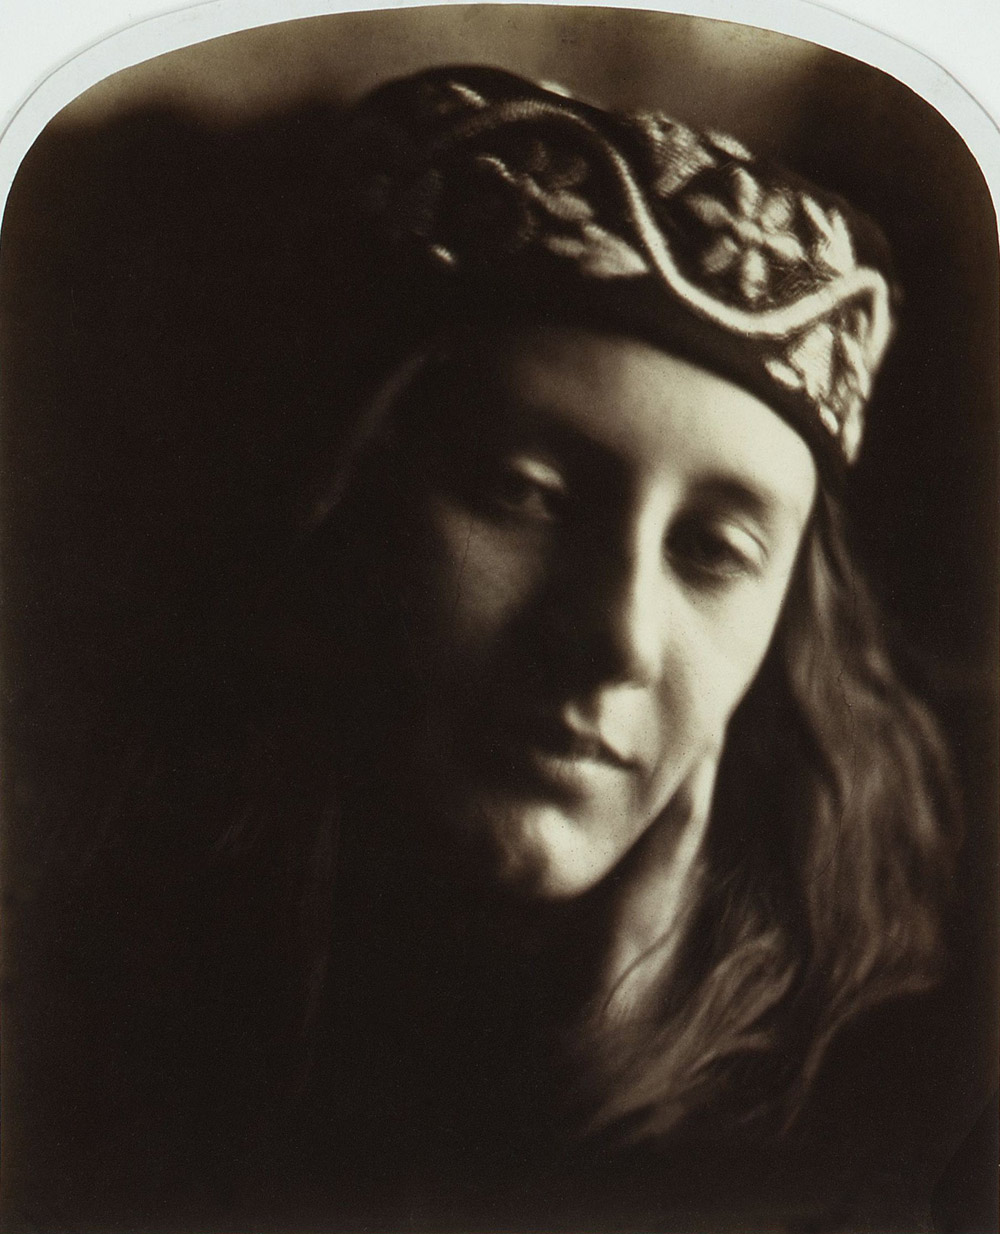 Julia margaret cameron is renowned for her: